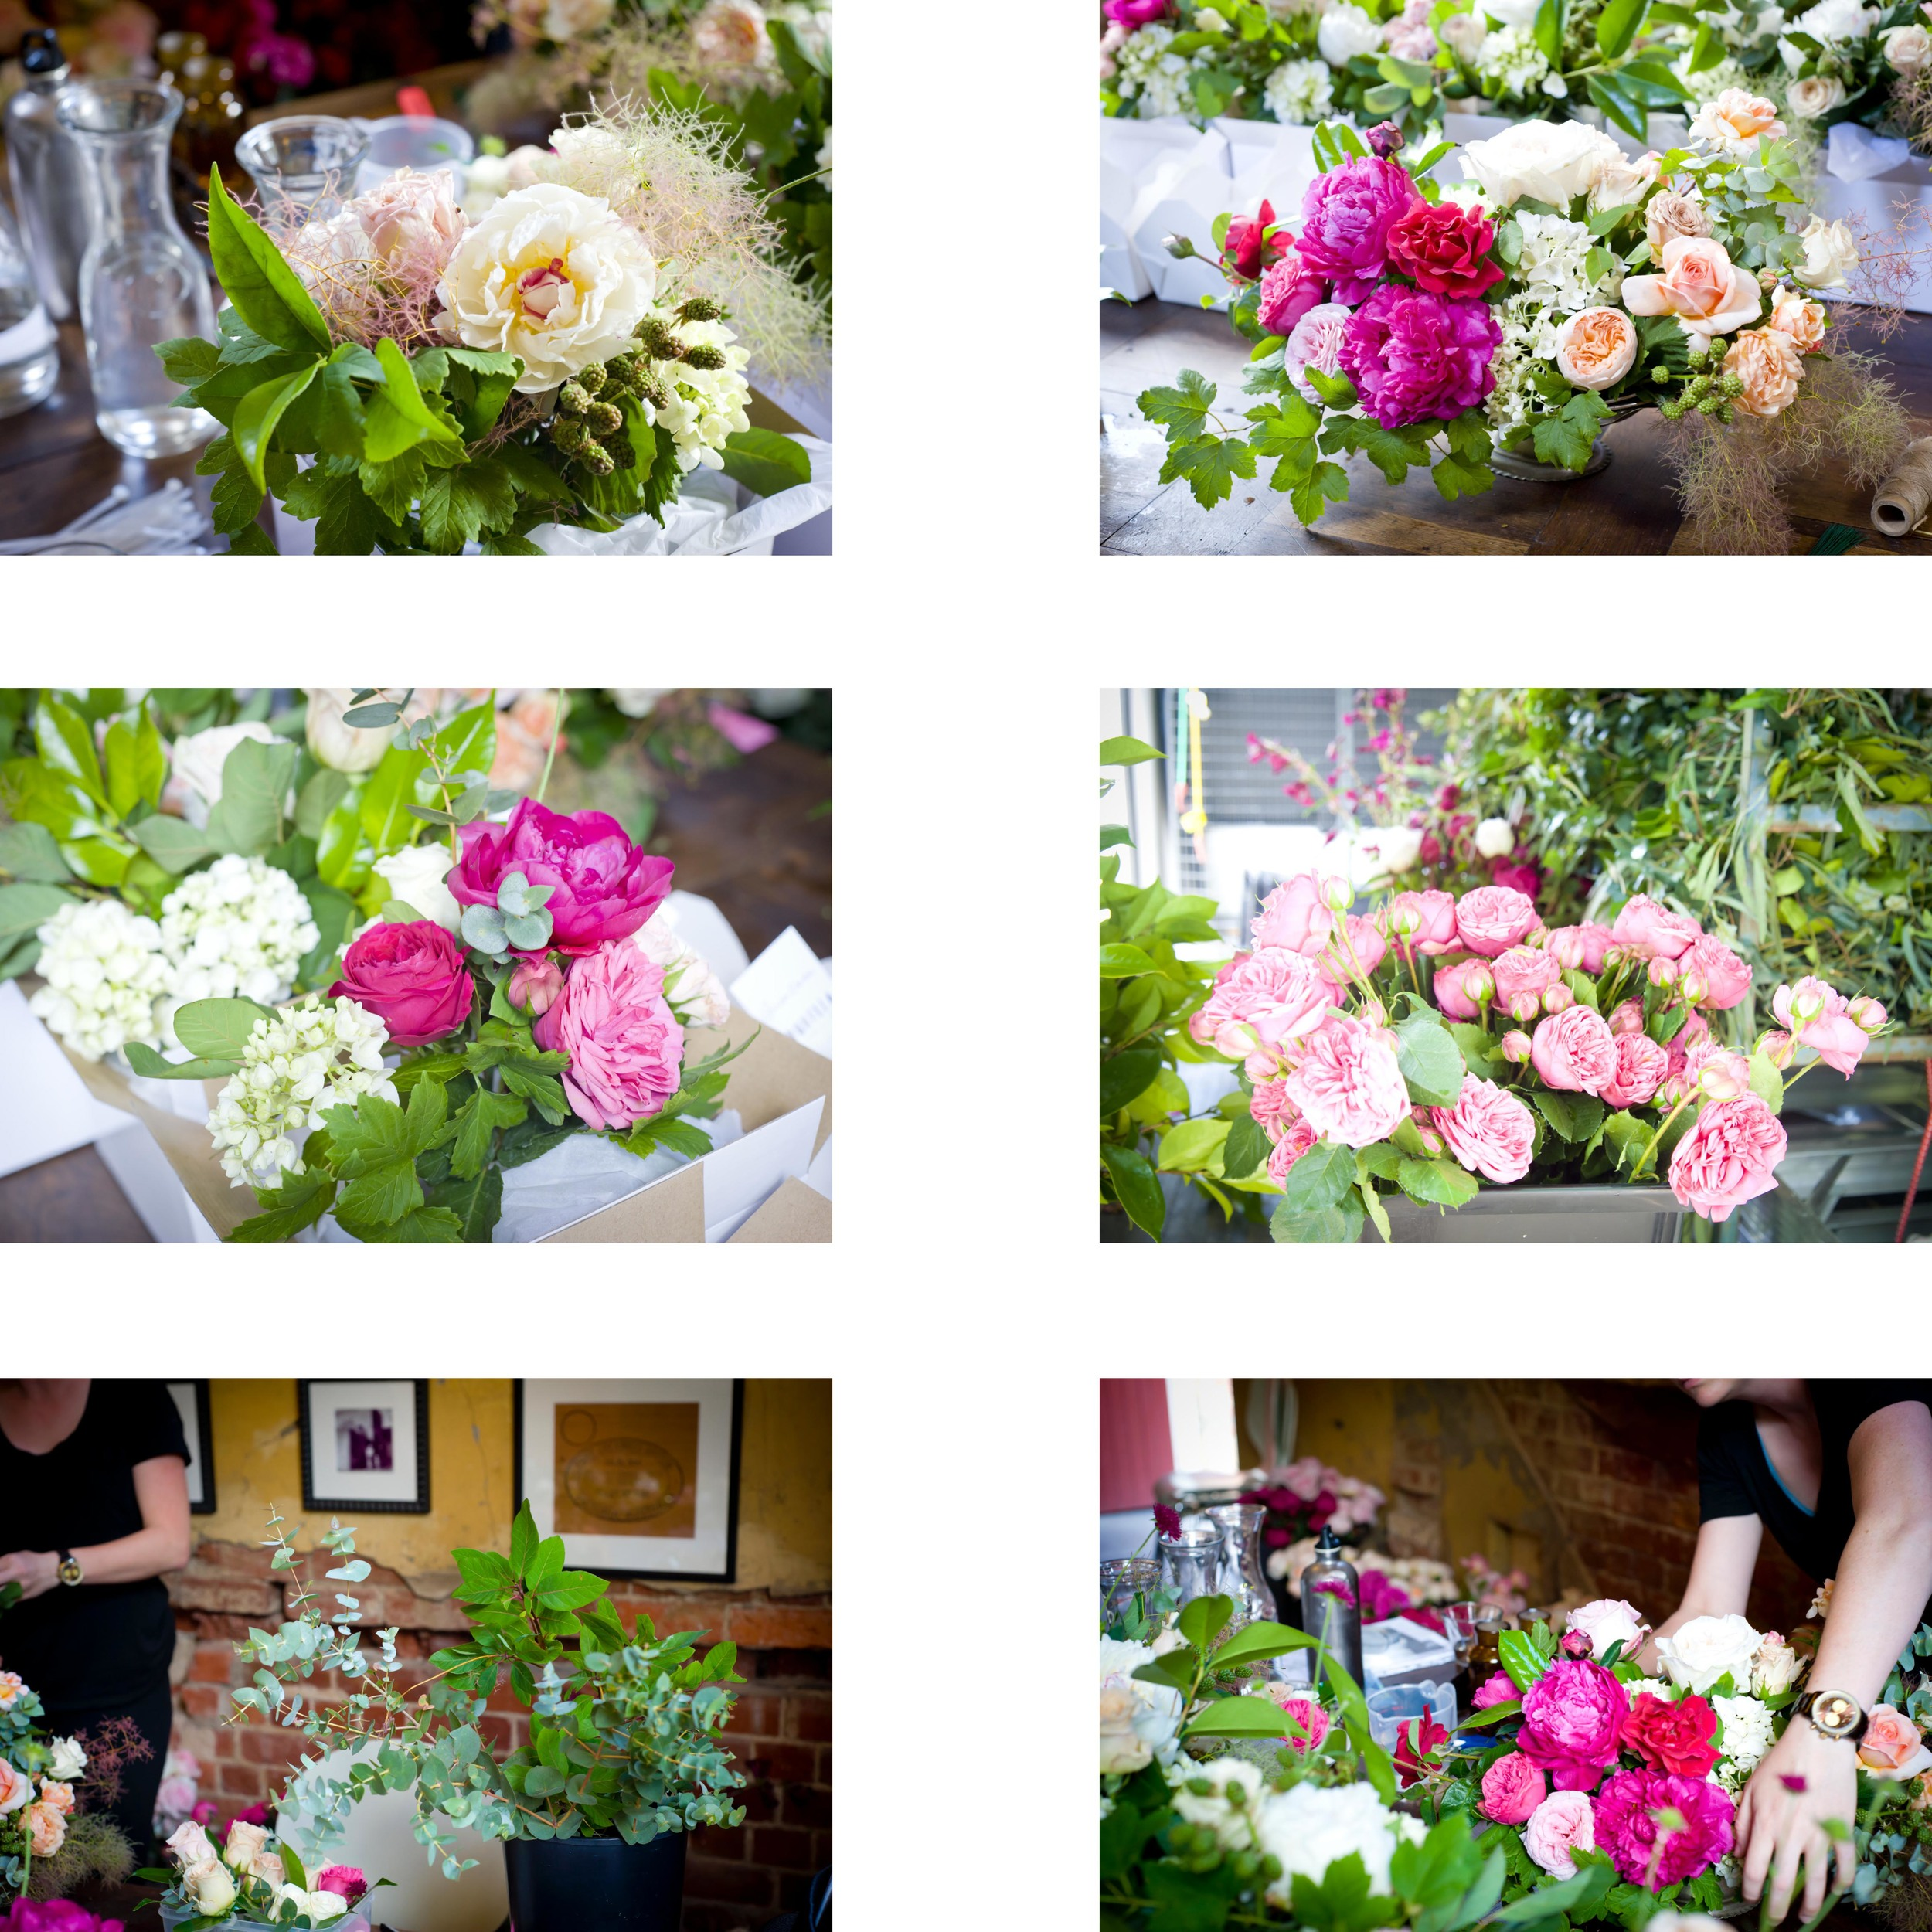 Making the bouquets